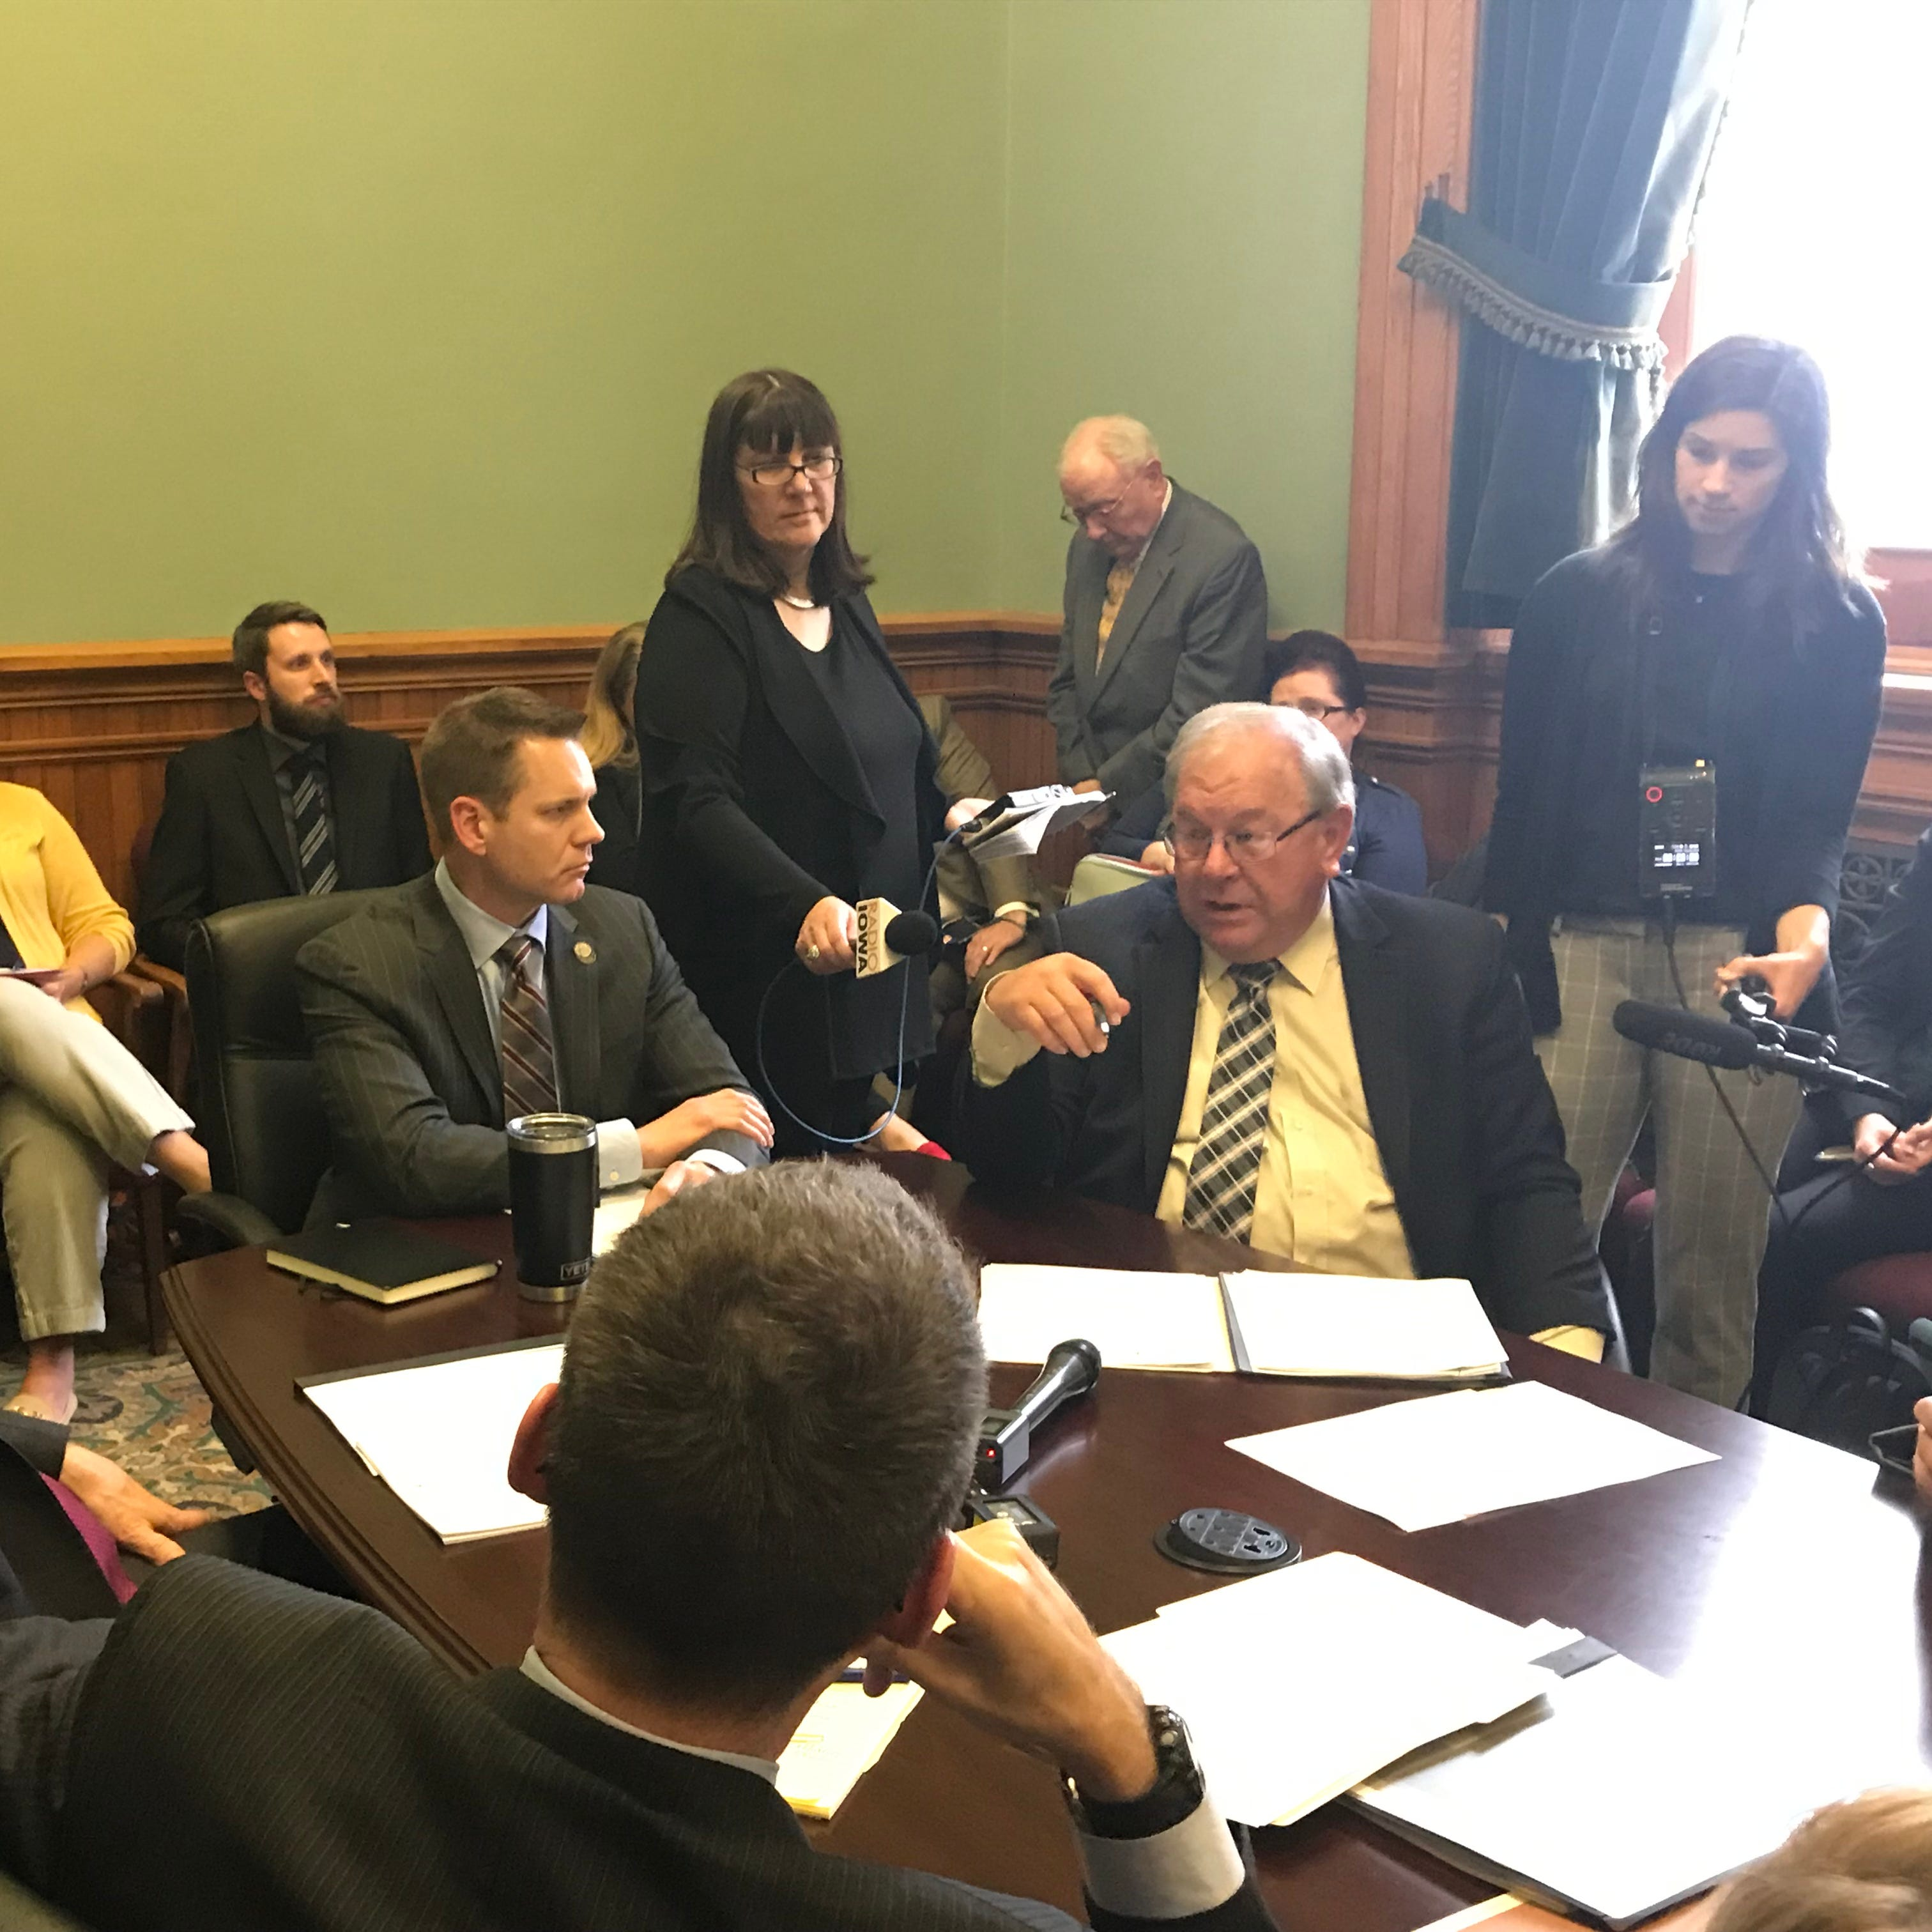 Iowa Sen. Tom Shipley, R-Nodaway, right, speaks about a bill that would prohibit people under 21 from using or buying tobacco products at a subcommittee meeting on Wednesday, April 10, 2019.